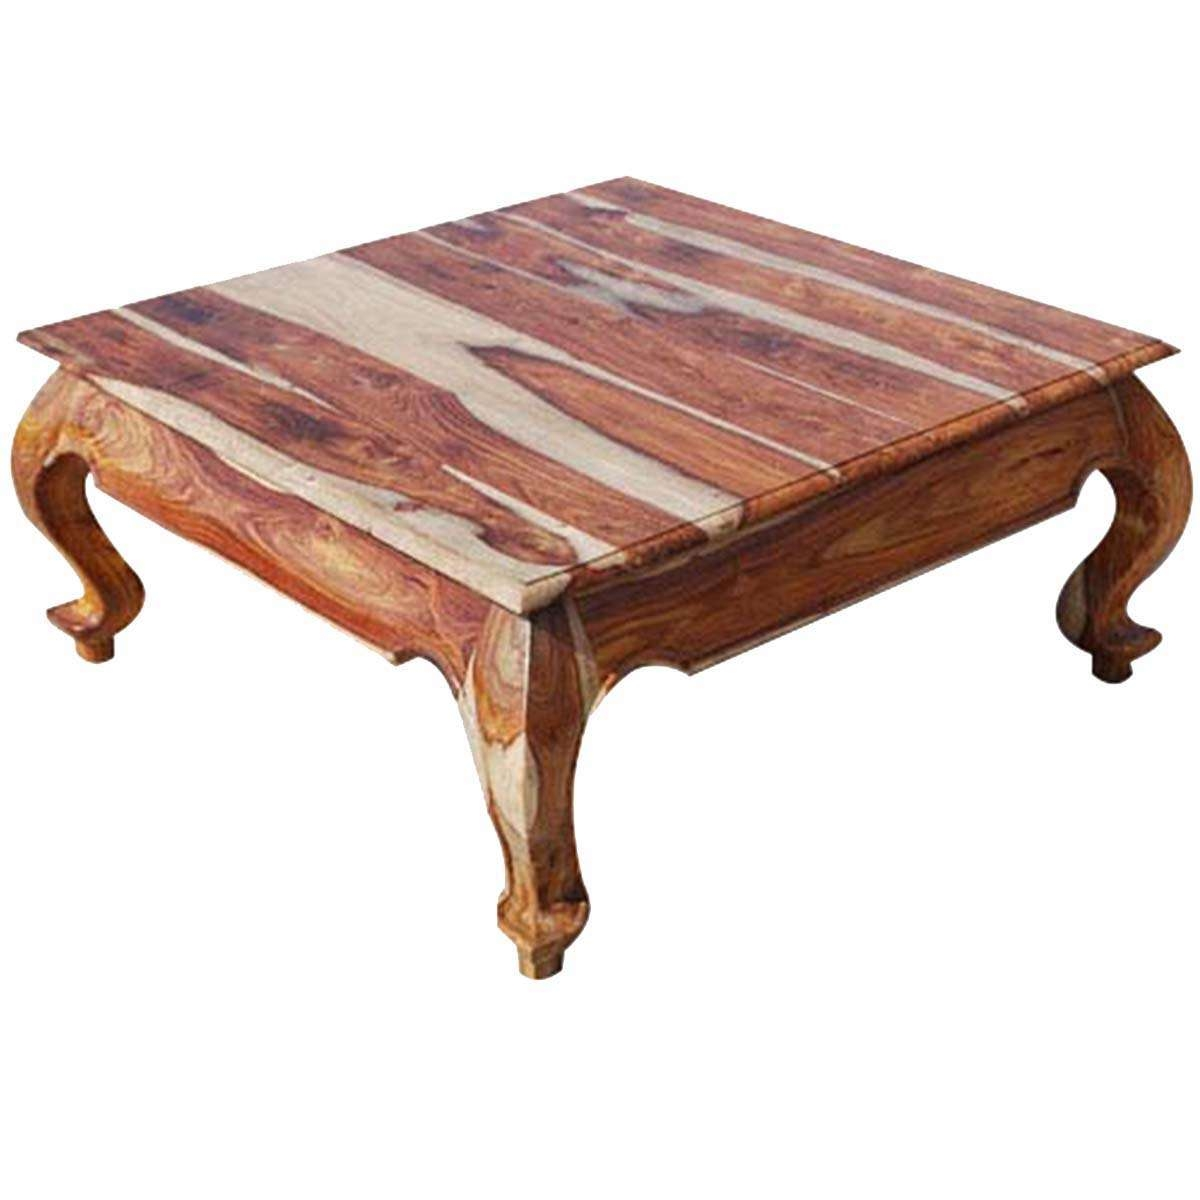 Custom Made Rustic Wood Coffee Tables Pertaining To Most Popular Solid Wood Coffee Tables (View 10 of 20)